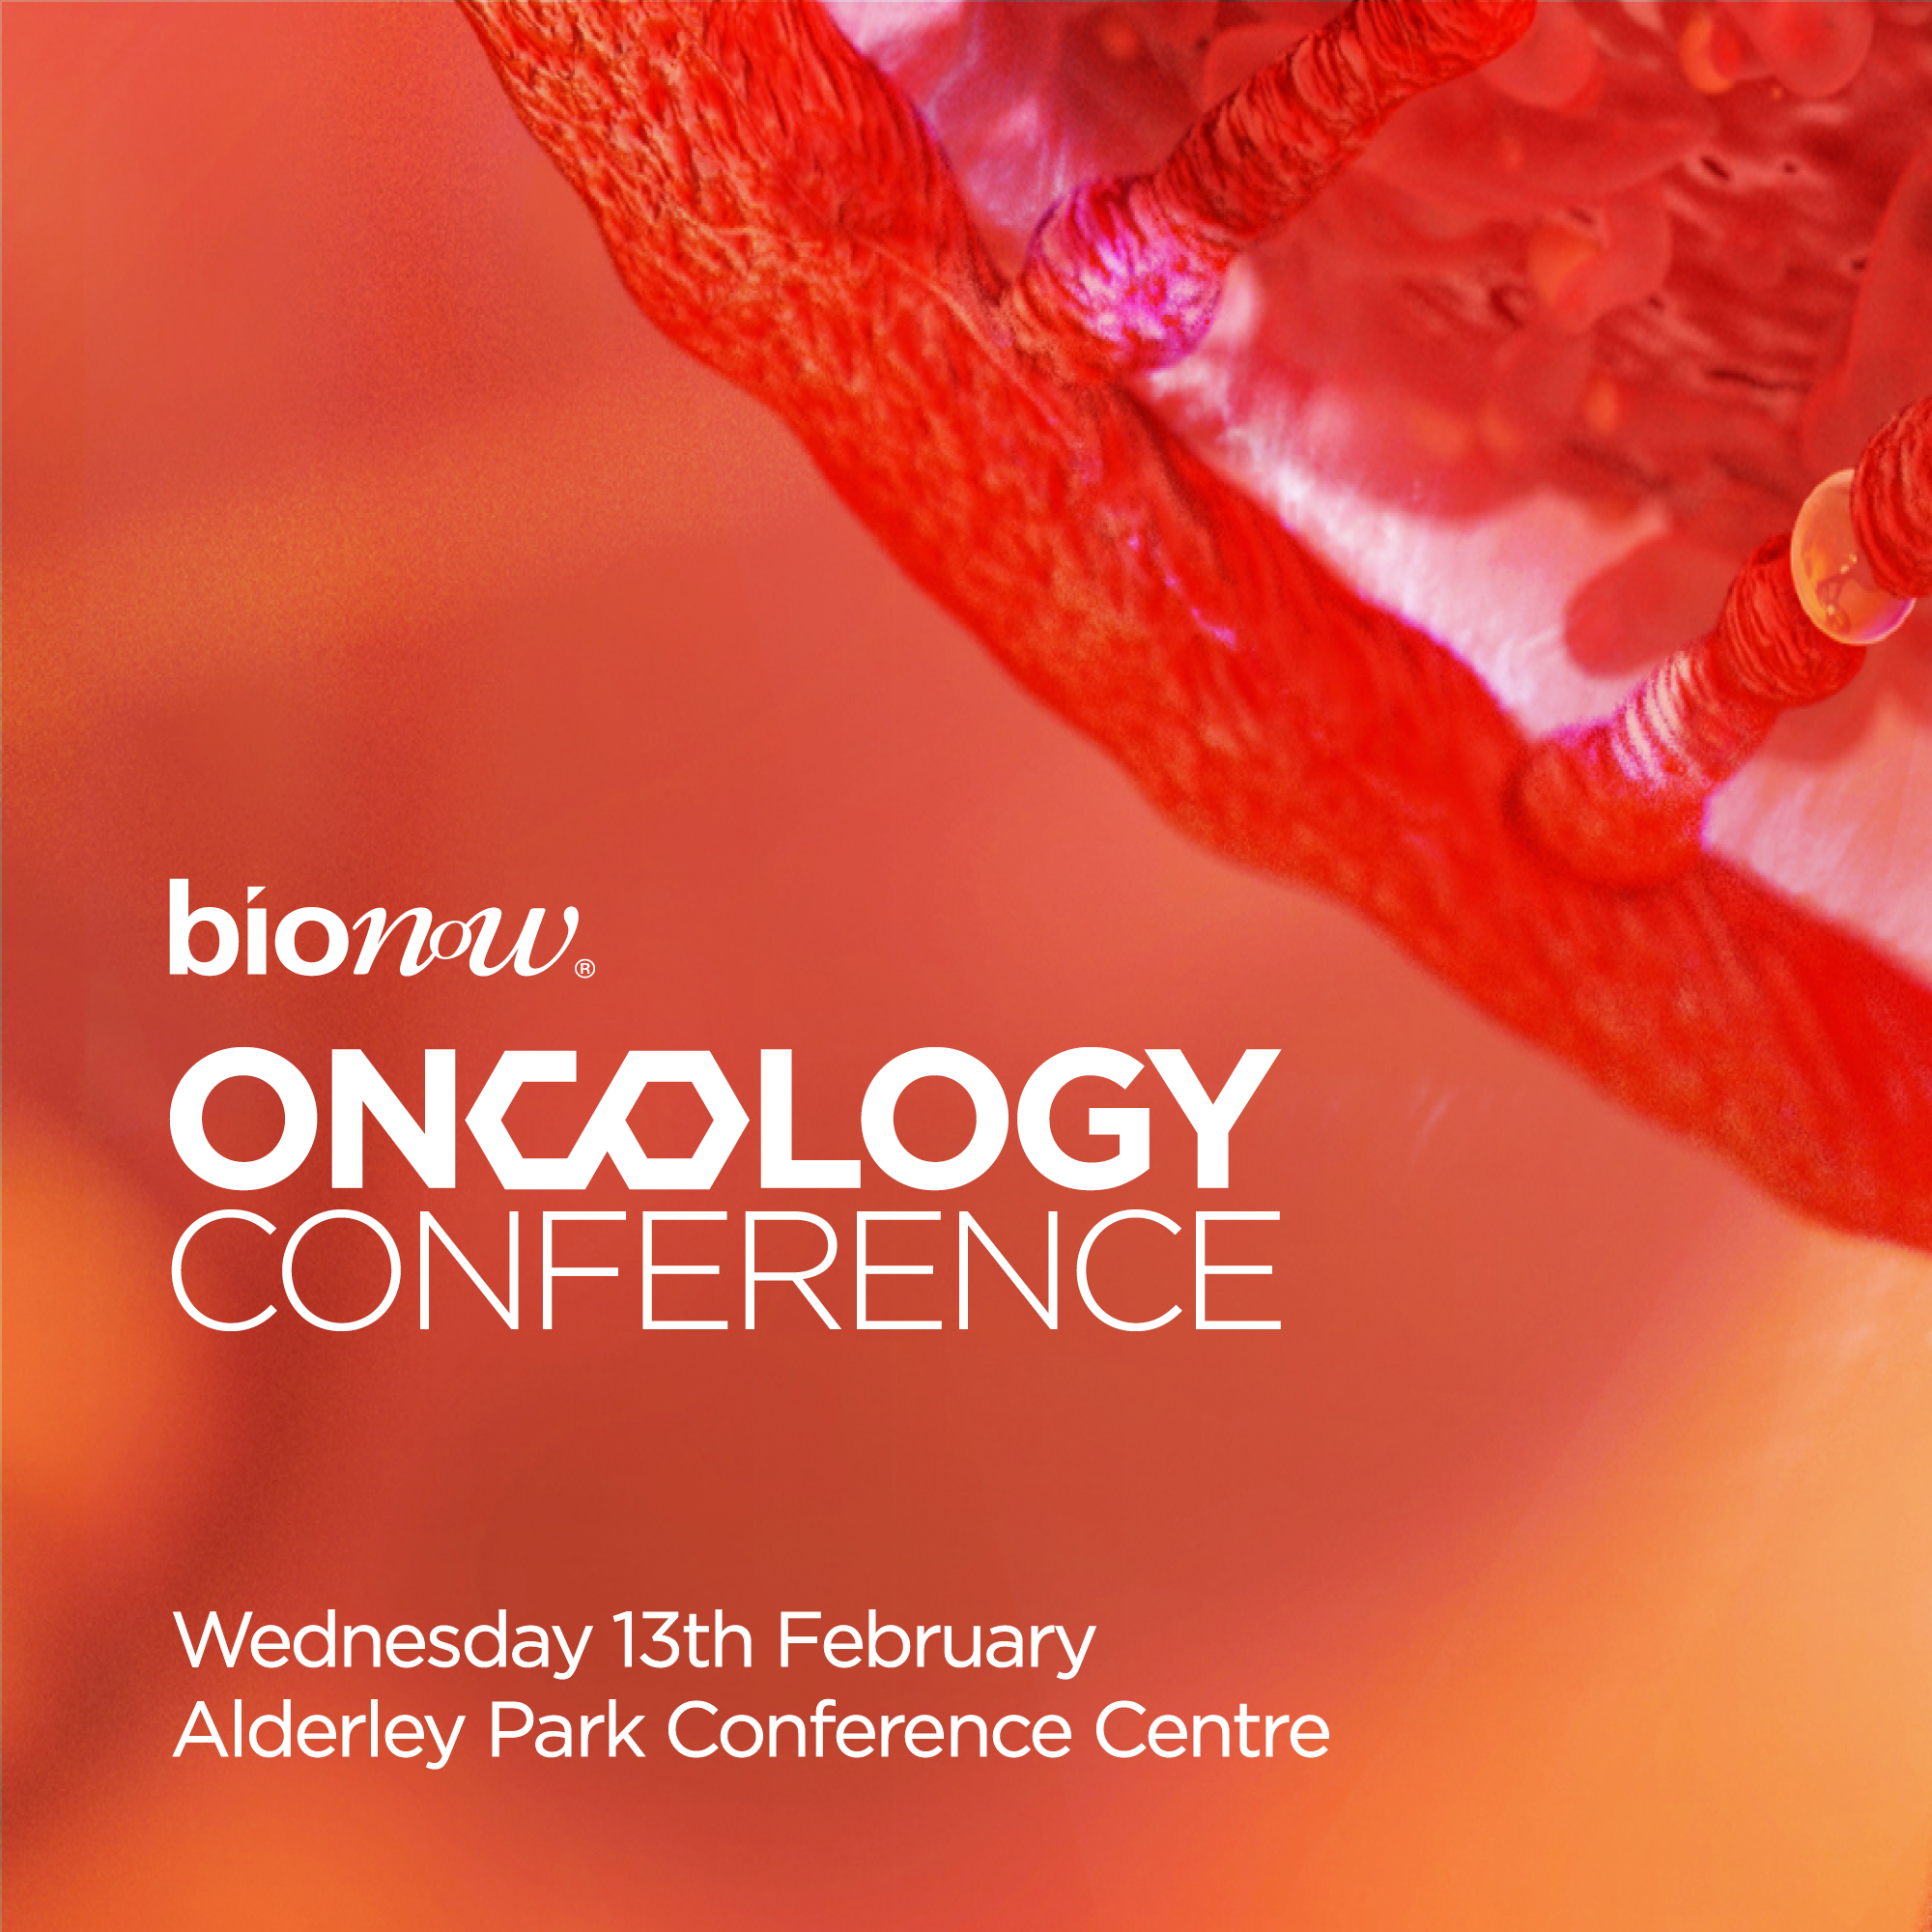 bionow oncology conference.png